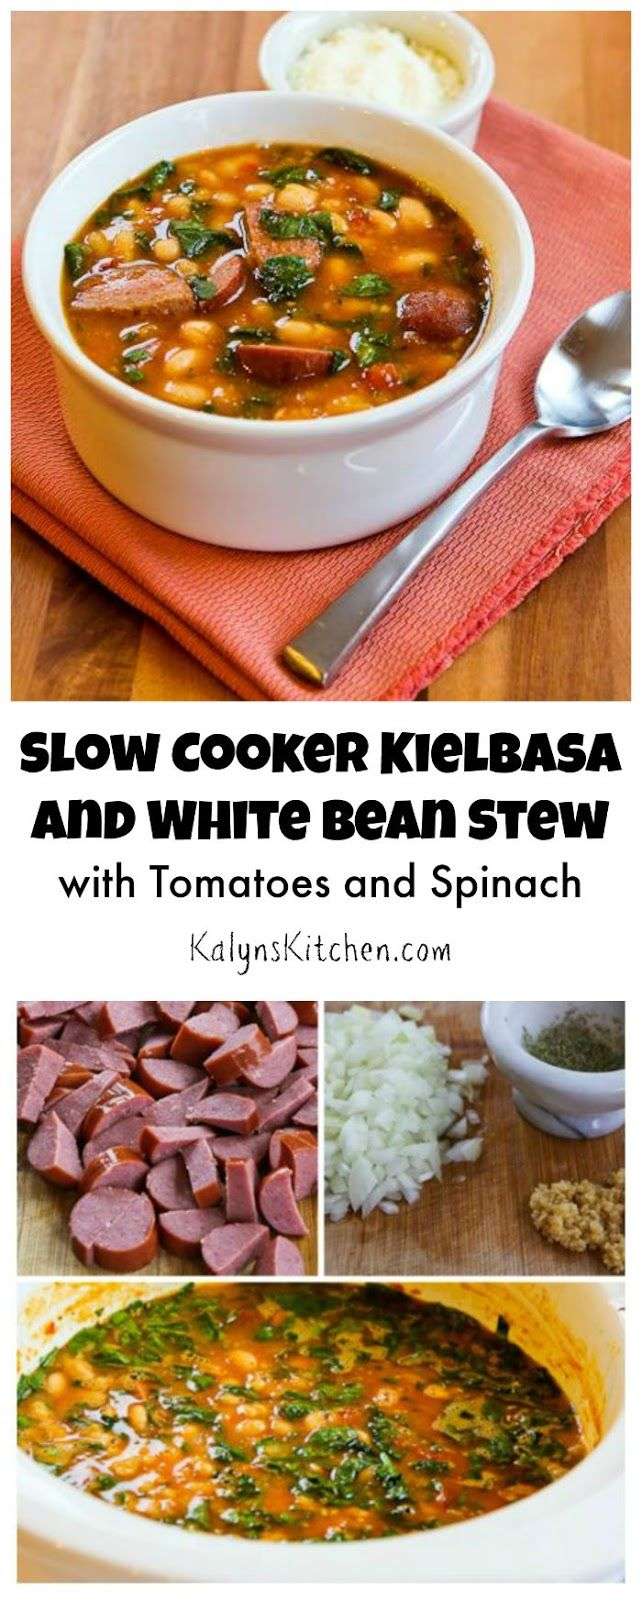 Kalyn's Kitchen®: Slow Cooker Kielbasa and White Bean Stew Recipe with Tomatoes and Spinach (Gluten-Free, Can Freeze)